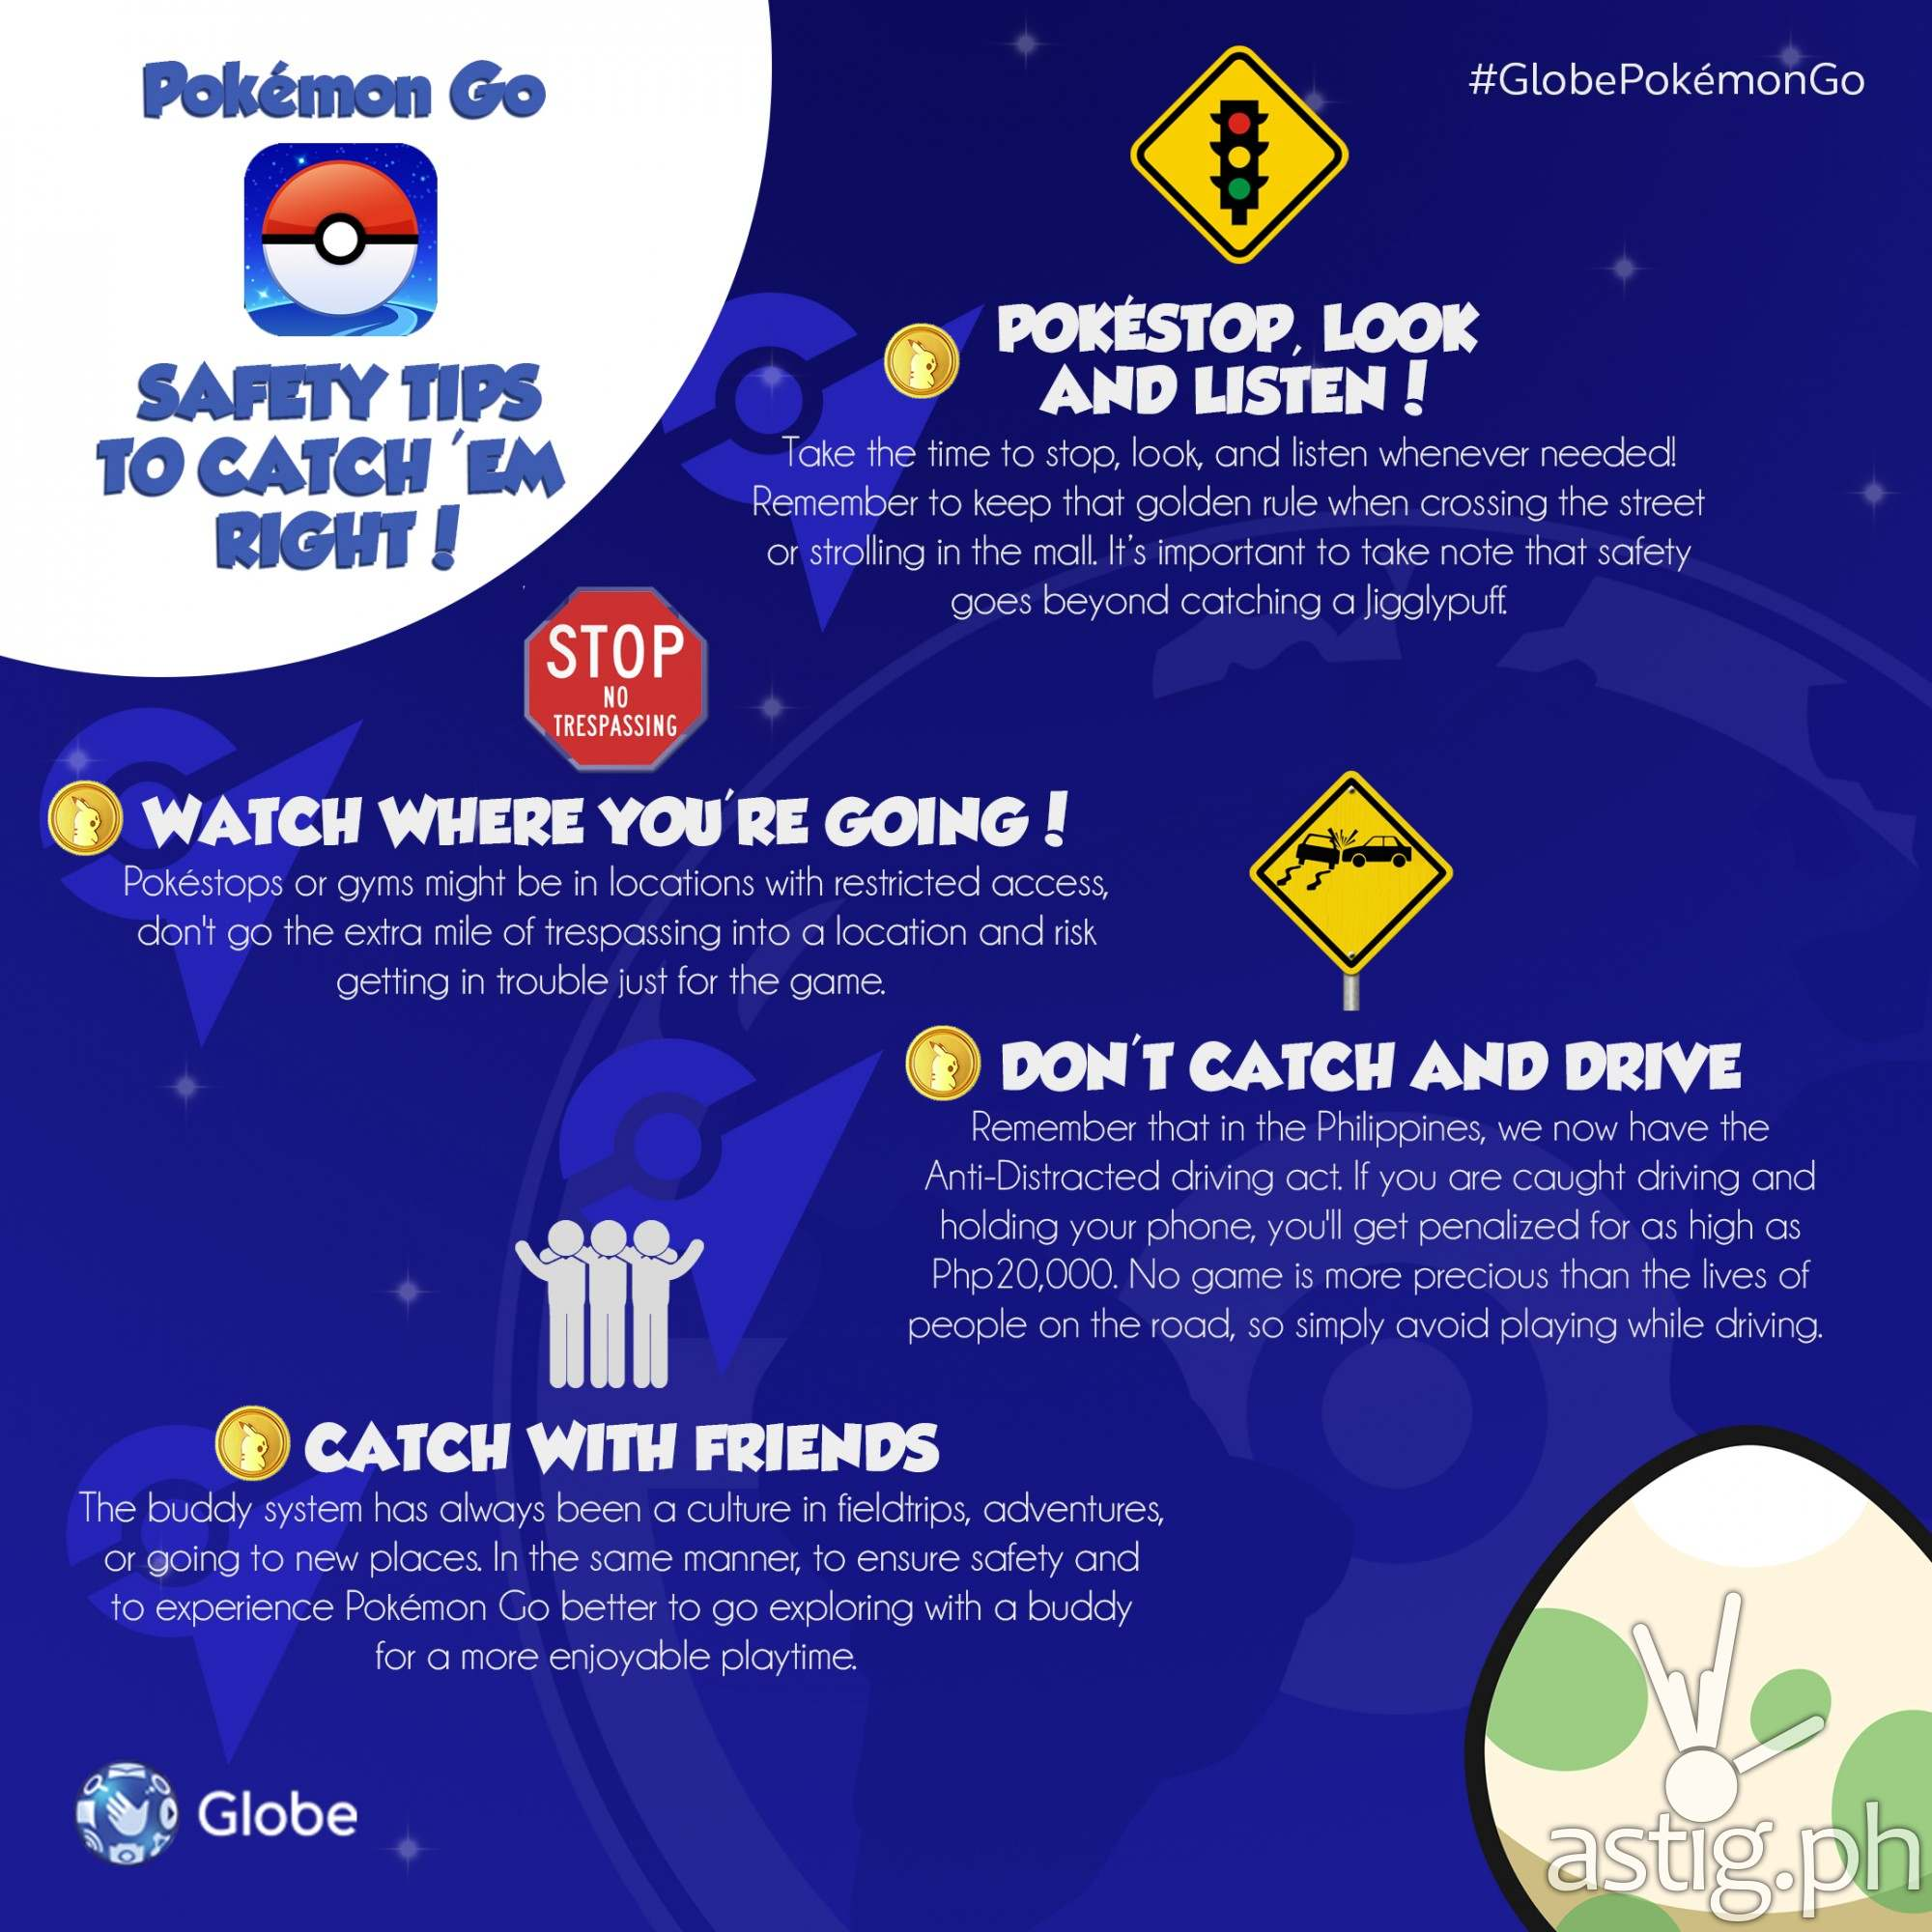 Play Pokemon GO free in the Philippines [infographic]